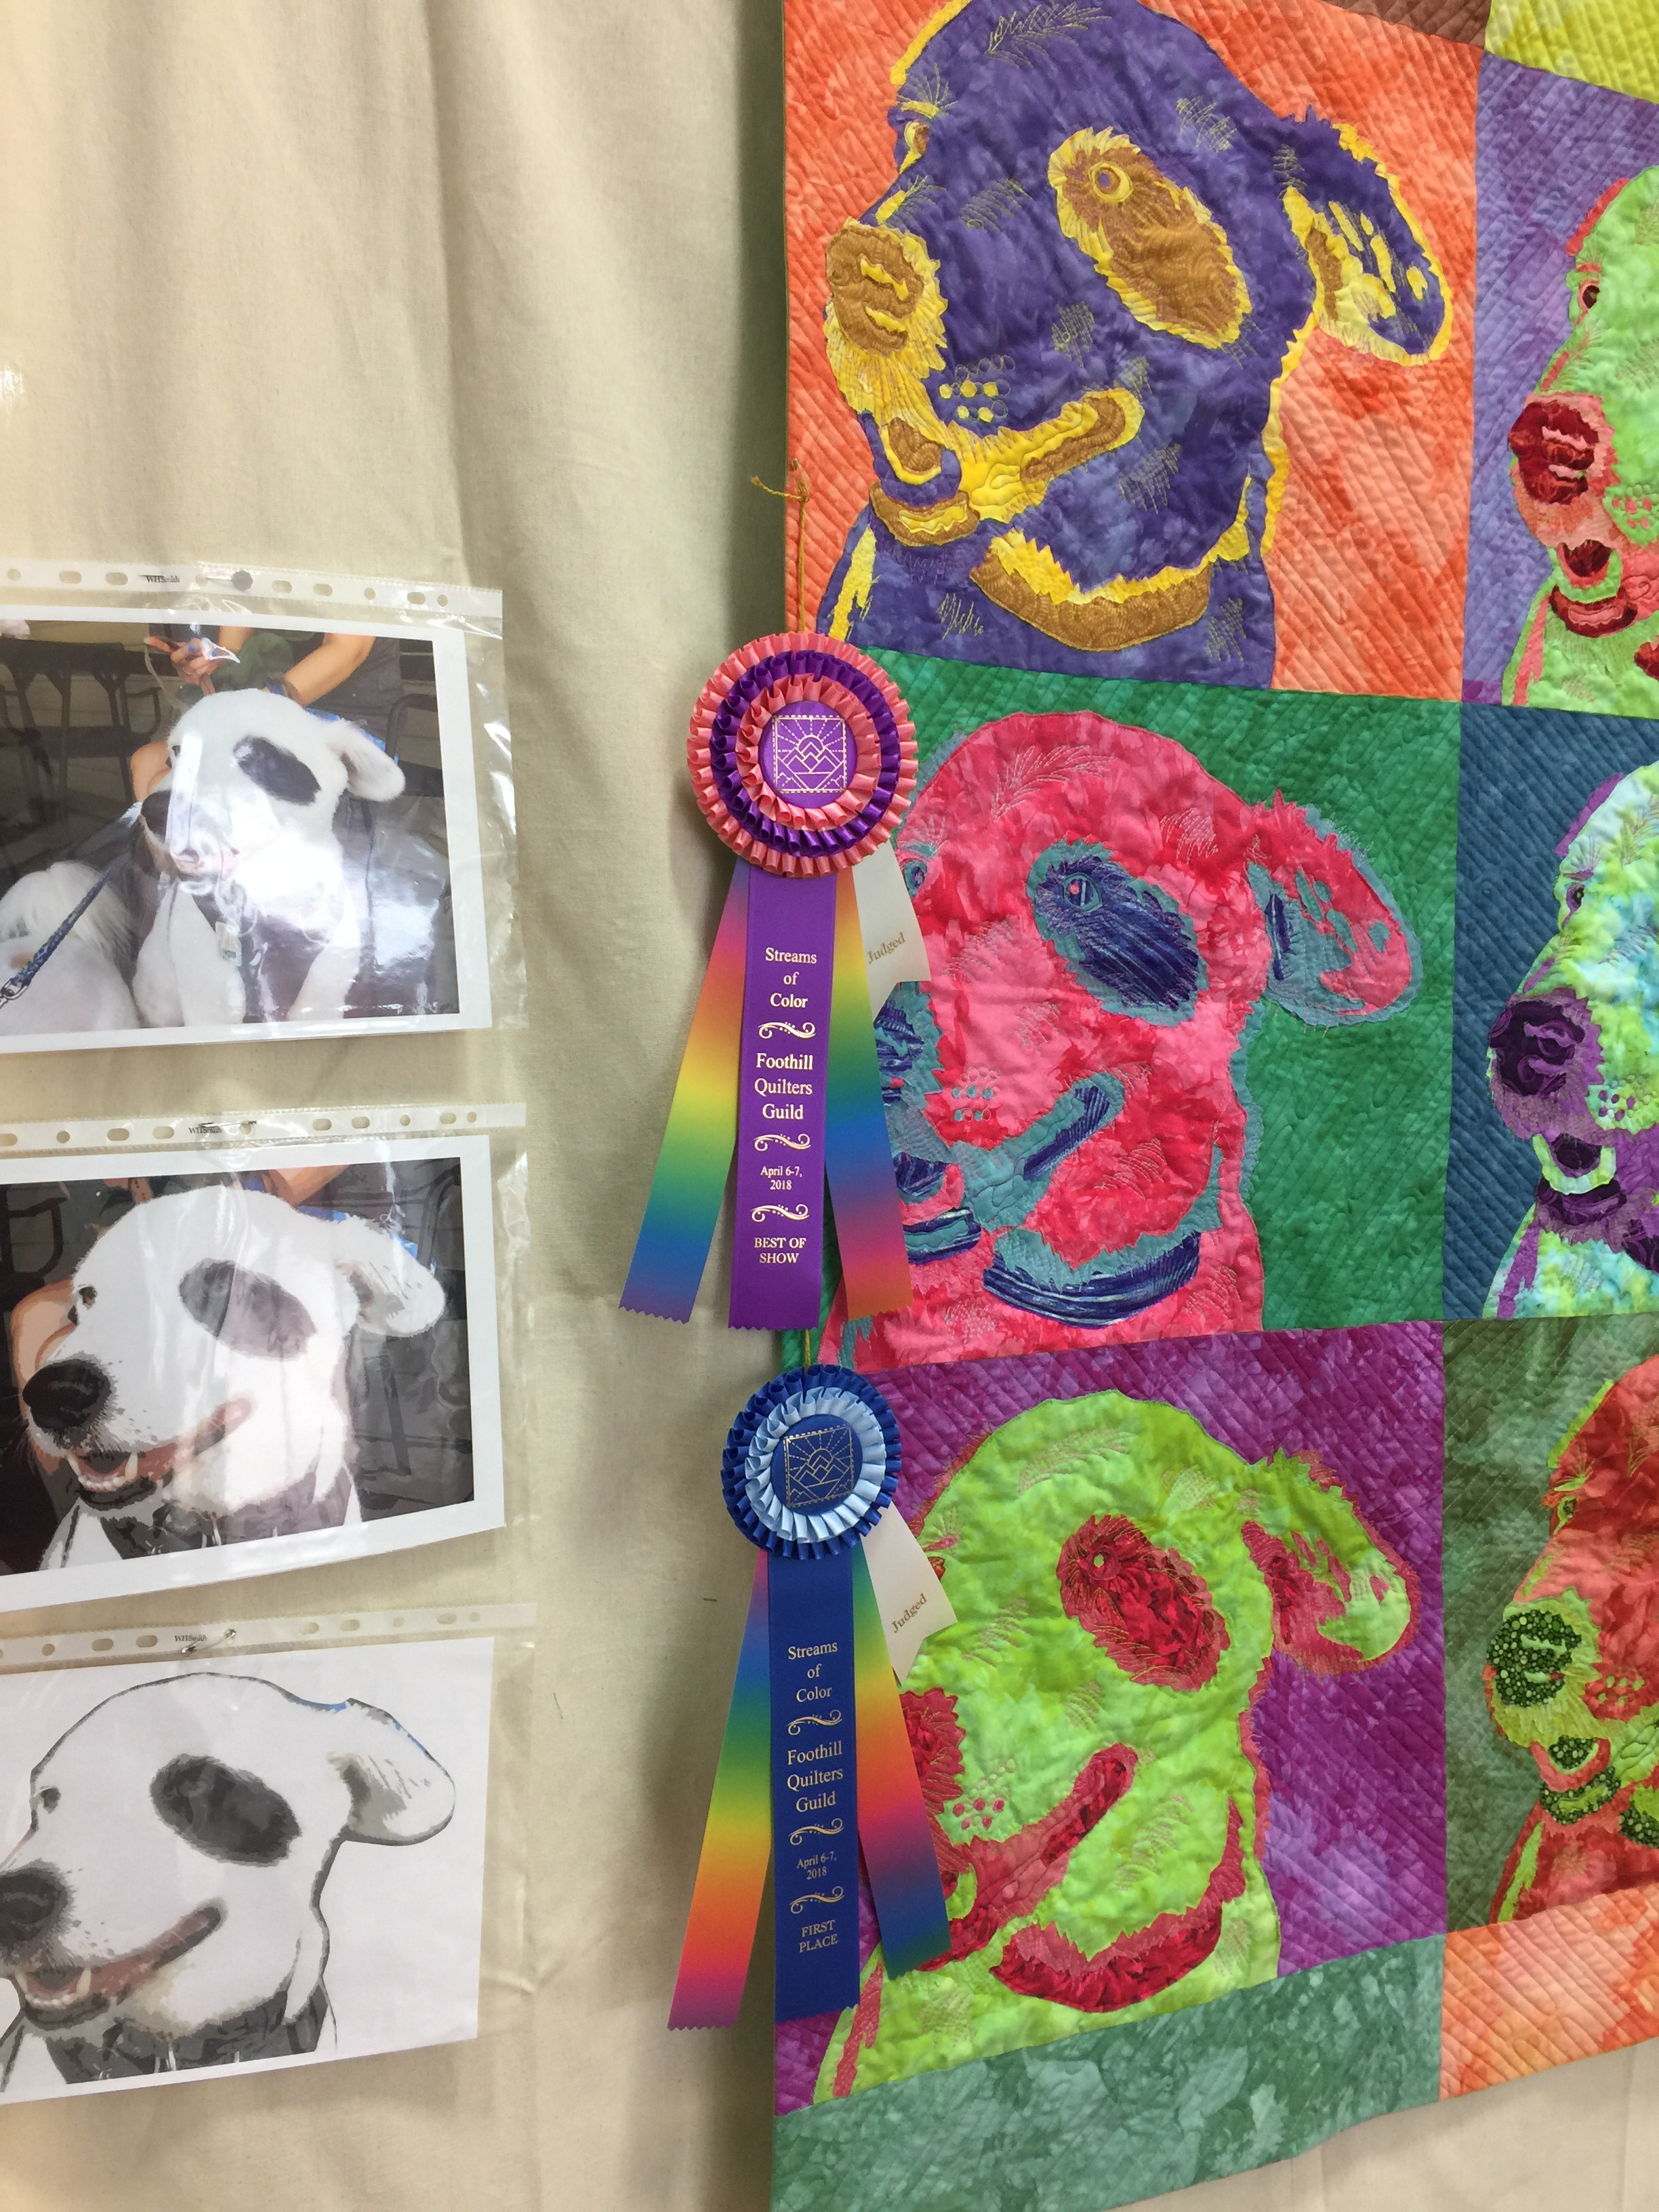 Best of Show ribbons